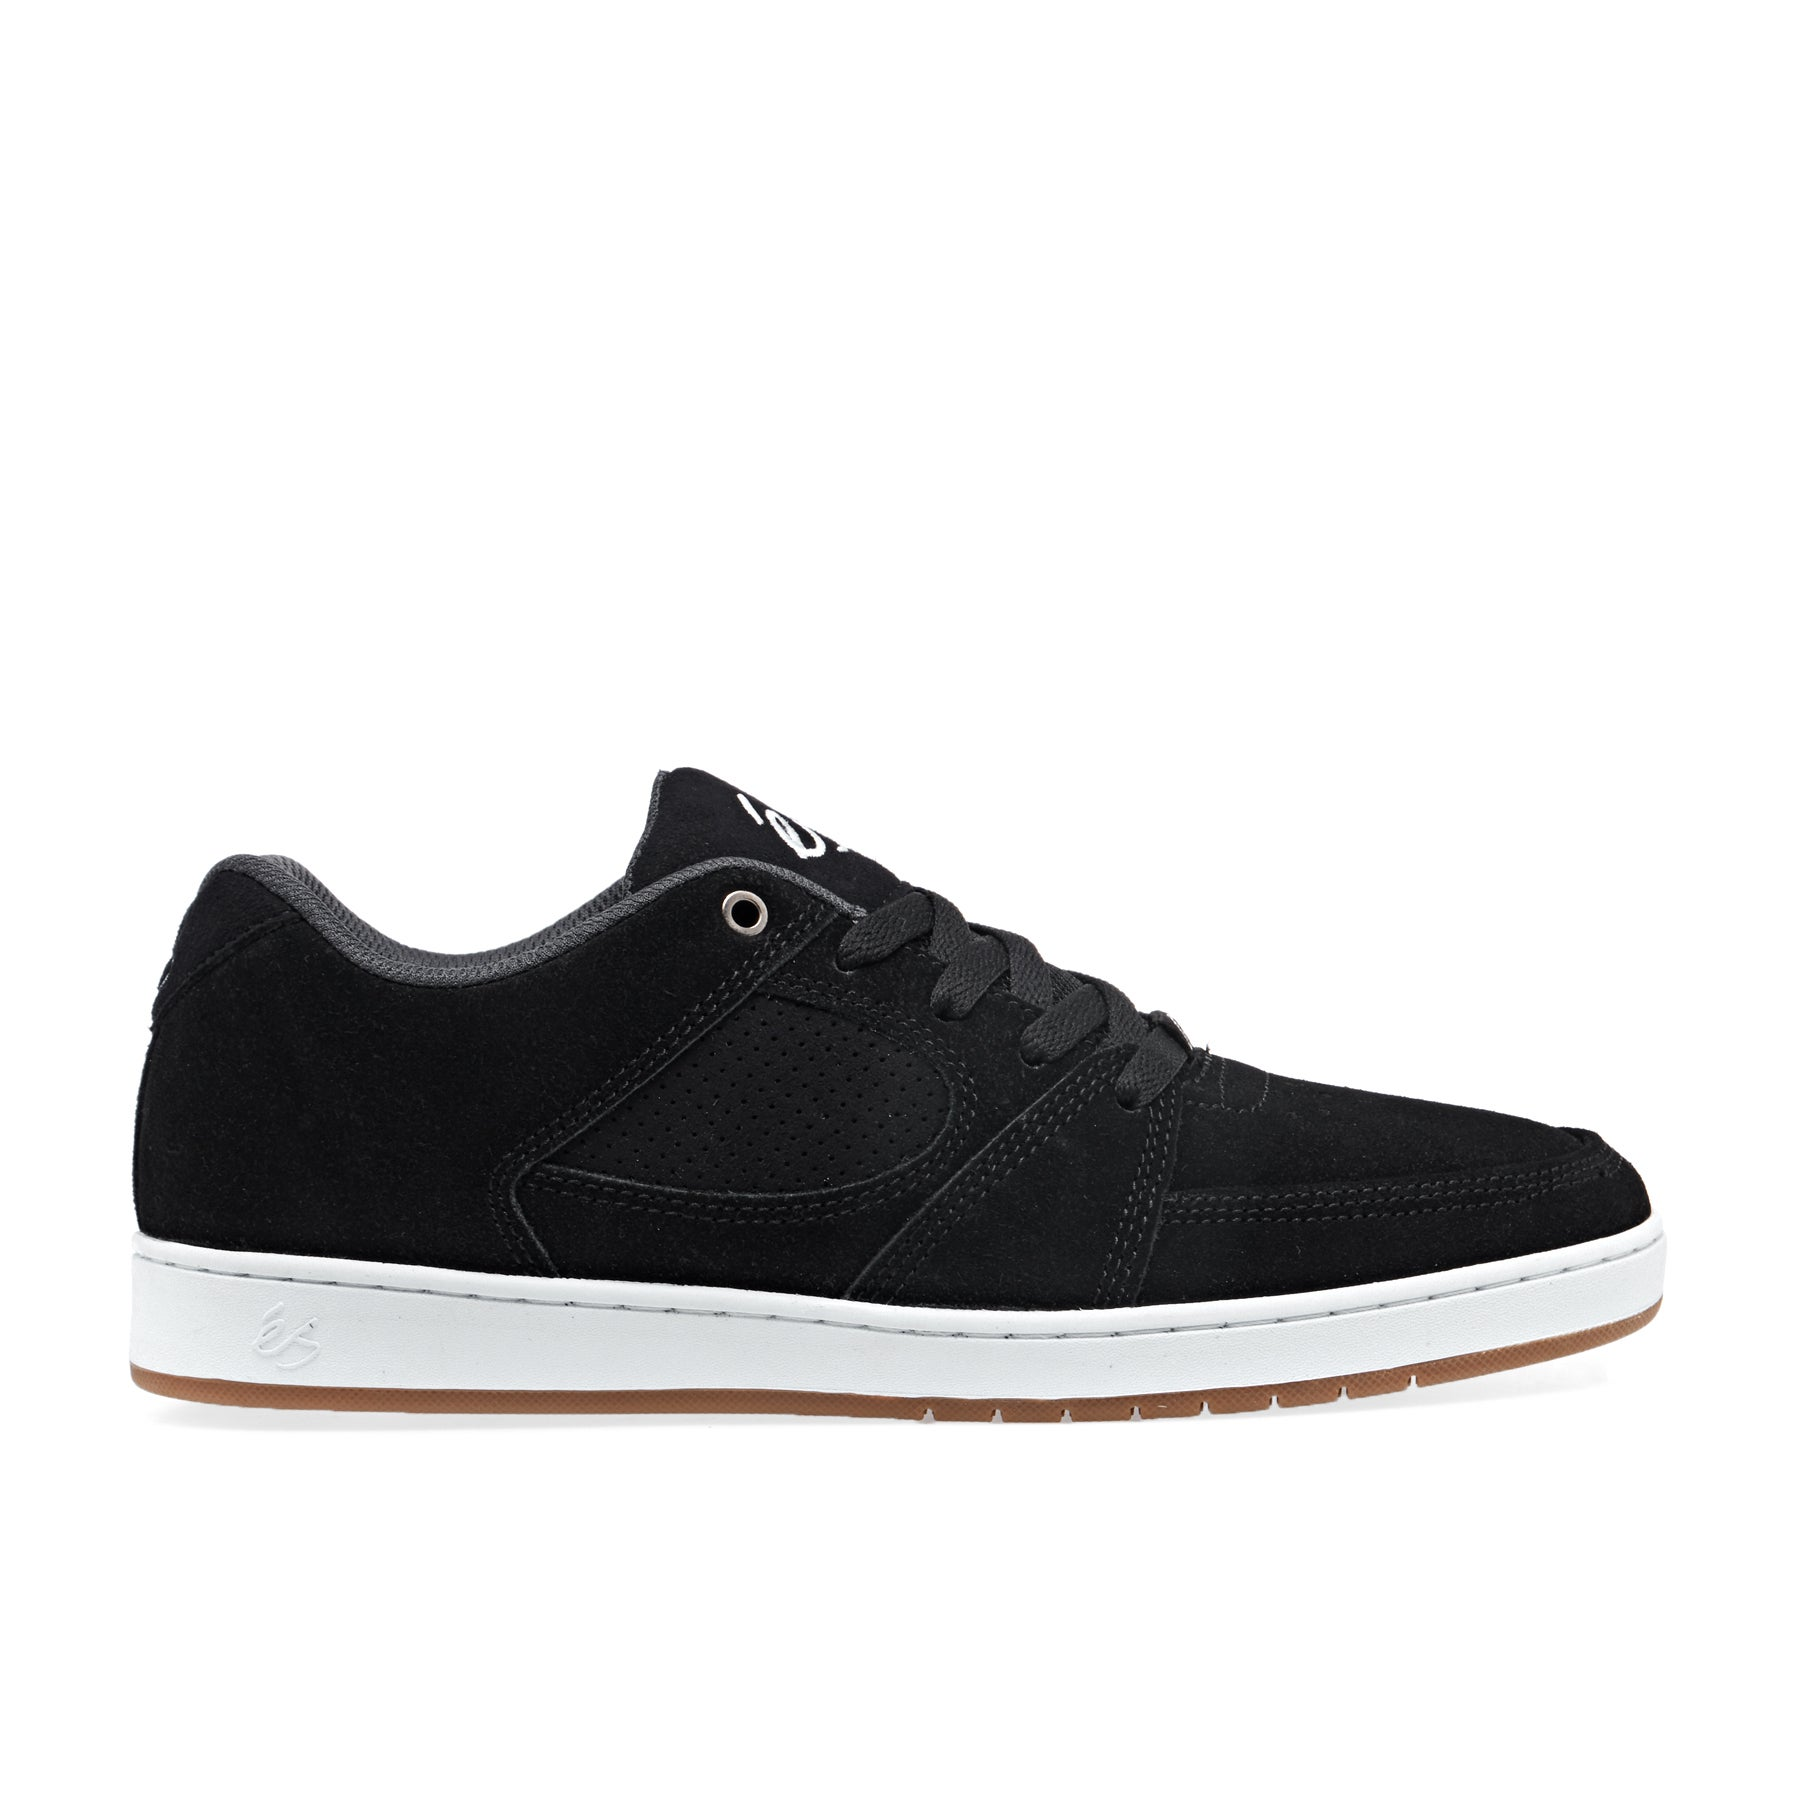 eS Accel Slim Shoes available from Surfdome